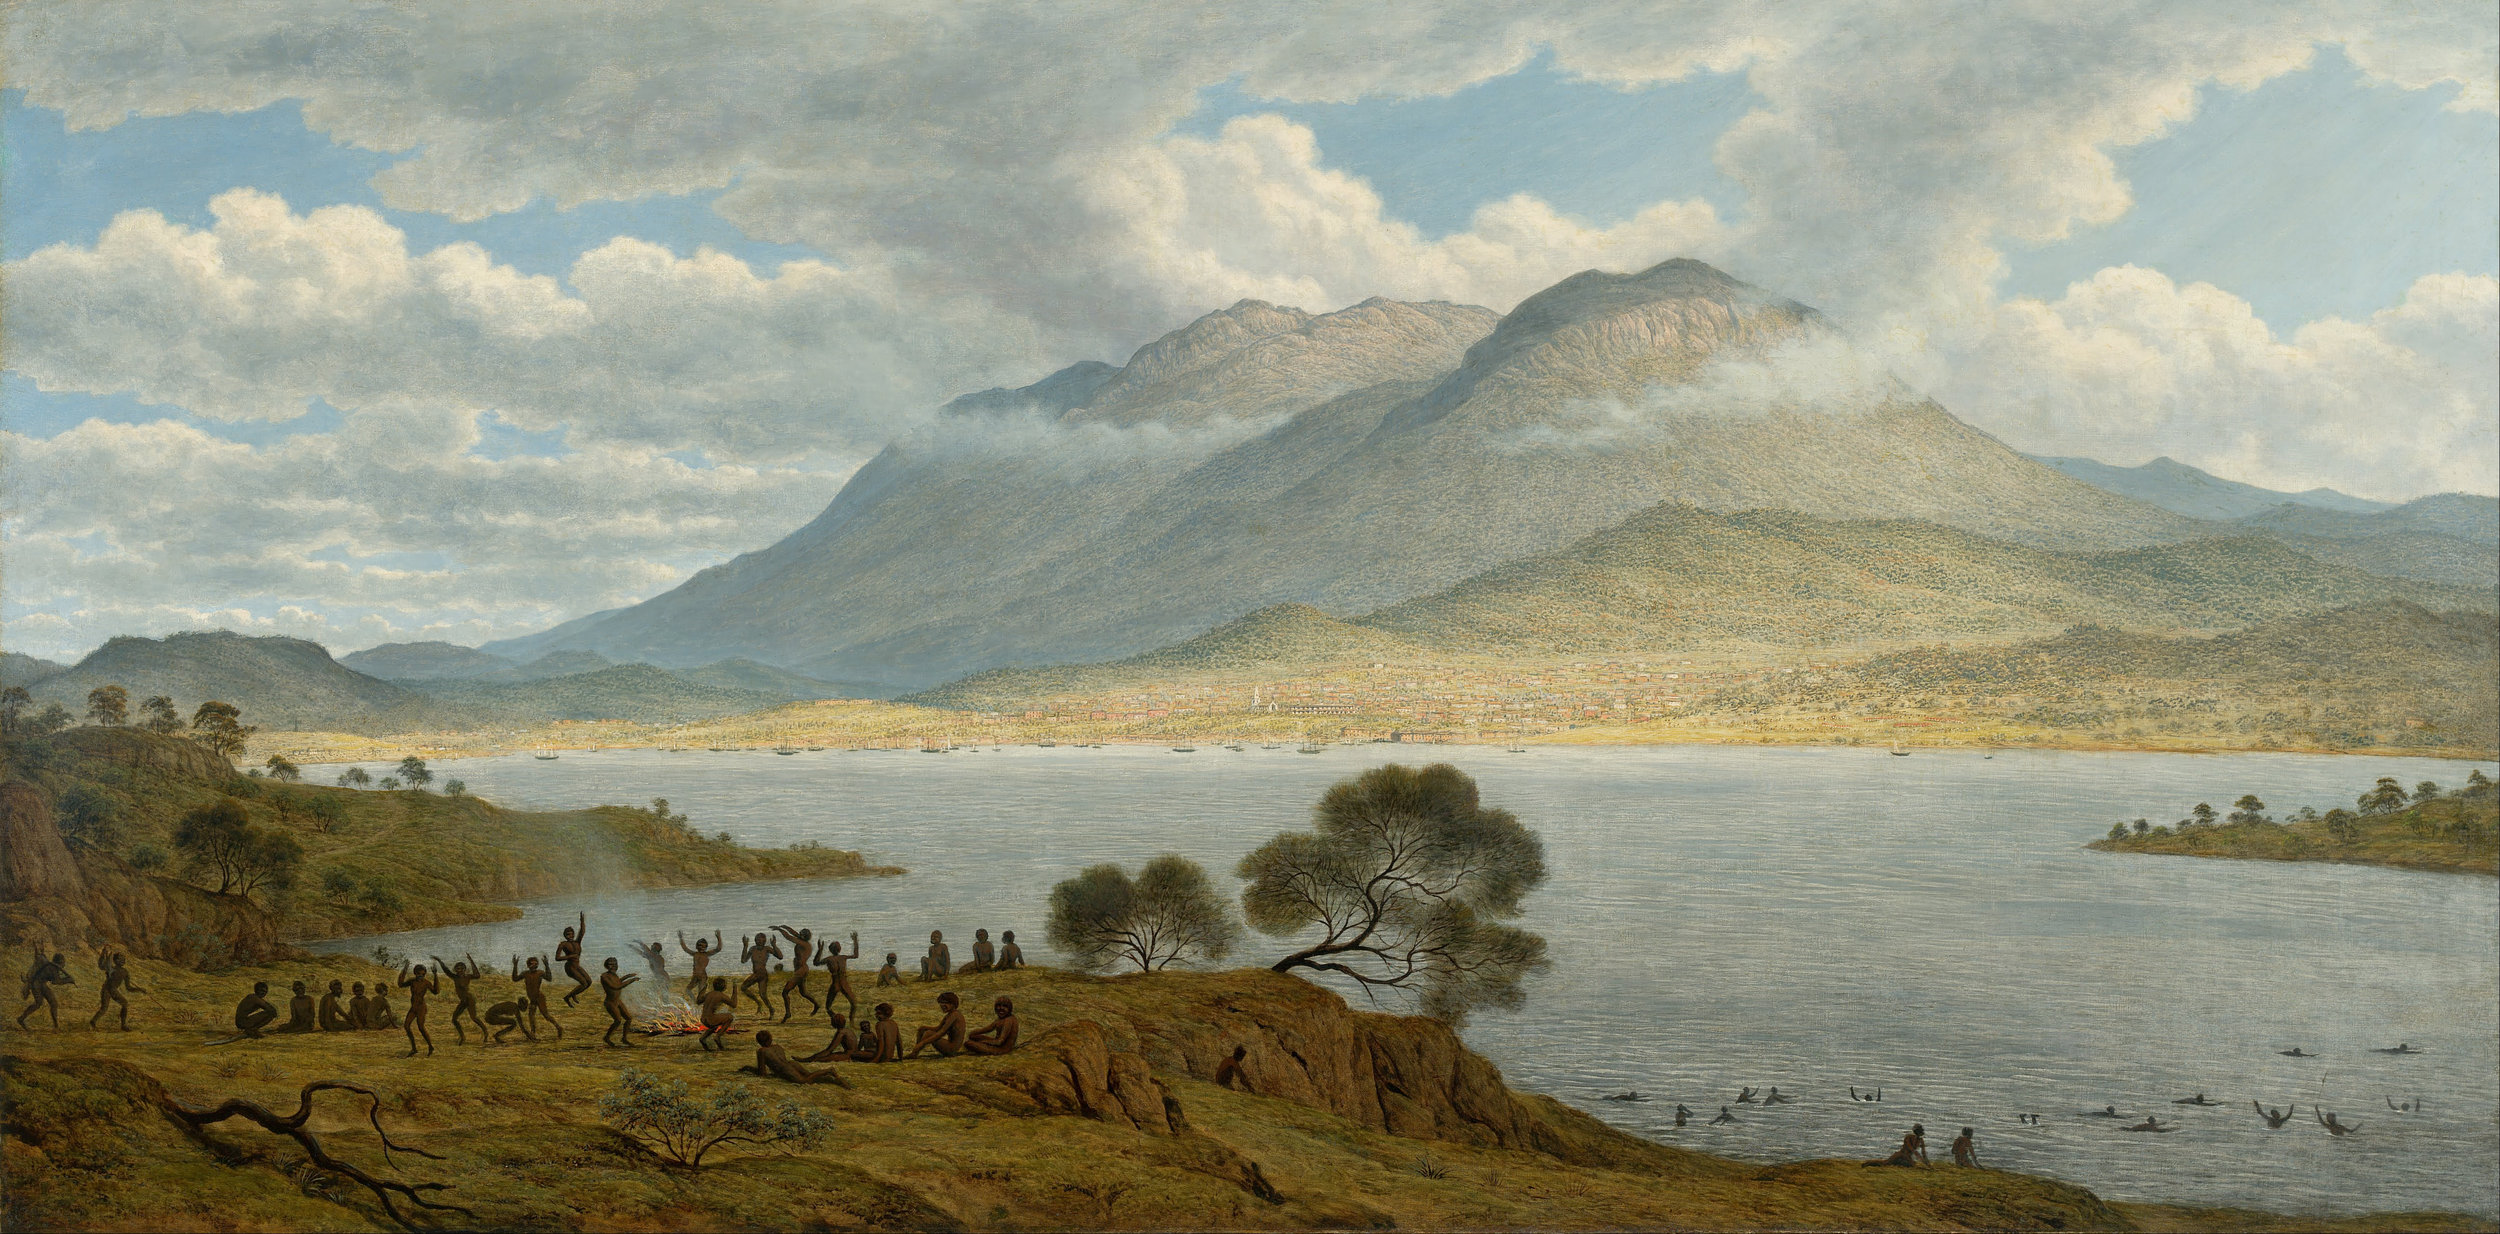 Figure 1:  Mount Wellington and Hobart Town from Kangaroo Point  (1831-33) by John Glover. Glover's painting was created at a time when most of the indigenous people of Tasmania had already been either murdered or incarcerated.